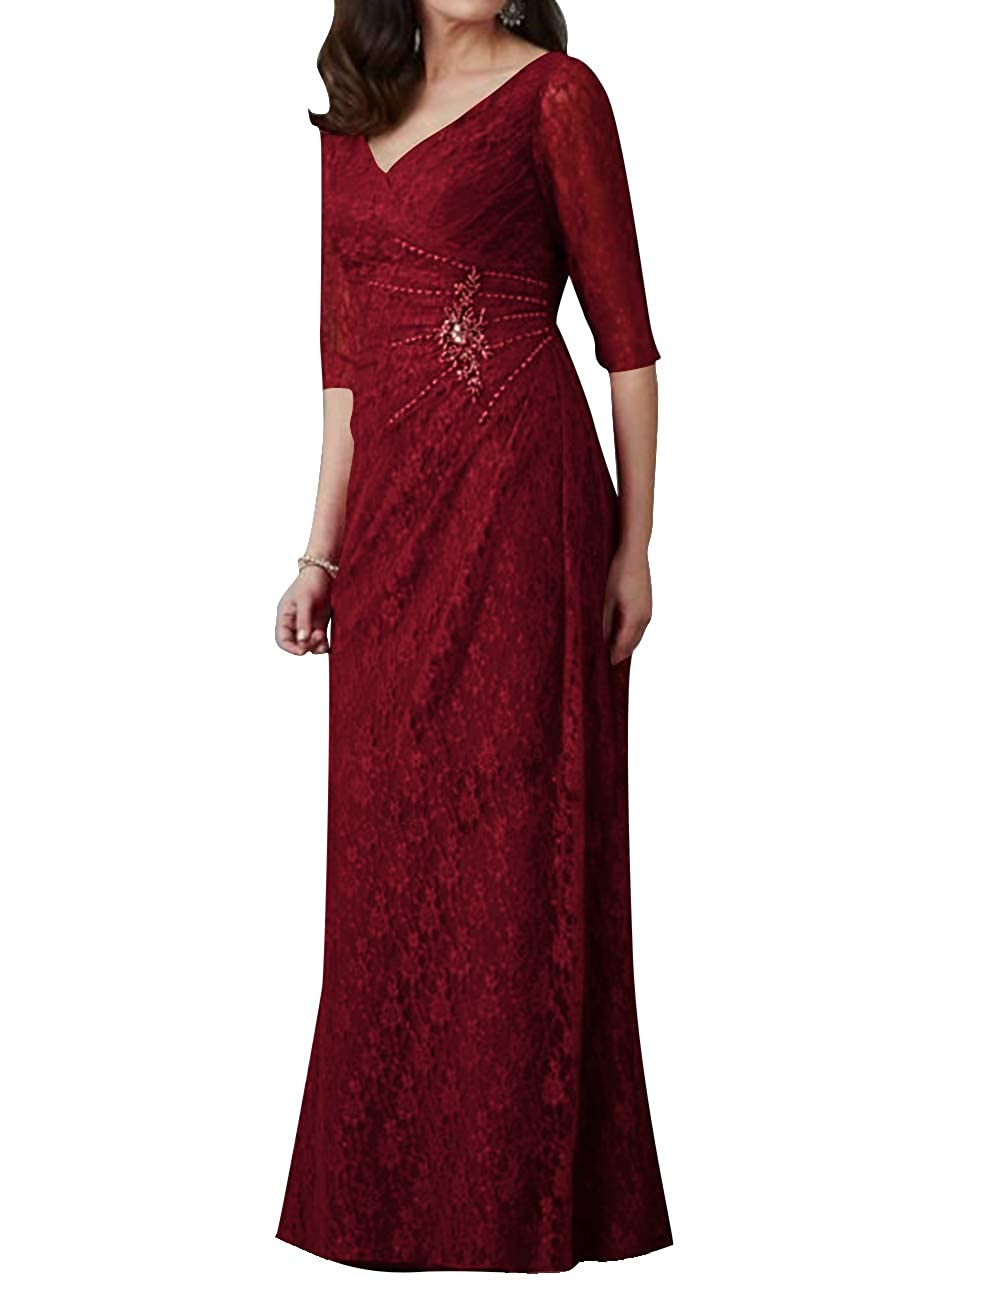 Lace Mother of The Bride Dresses V Neck Evening Party Dresses Half Sleeves Long